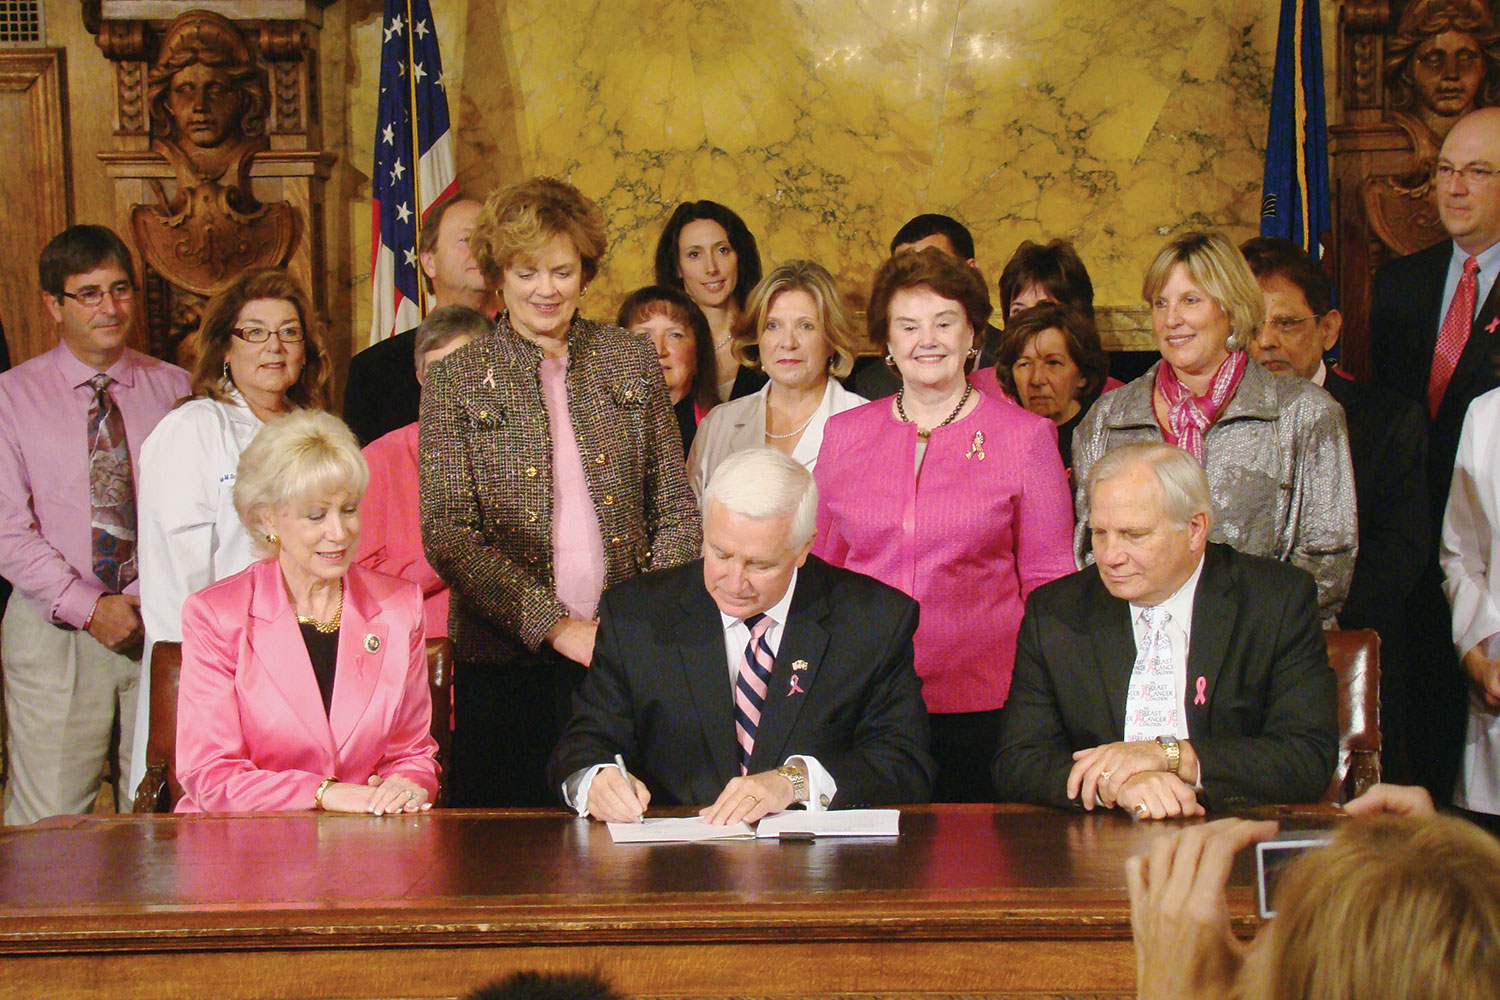 Spinello joins supporters as former Gov. Tom Corbett, center, signs the Pennsylvania Breast Density Notification Act that was introduced by Sen. Bob Mensch, seated right. Photo courtesy of the Pennsylvania Breast Cancer Coalition.